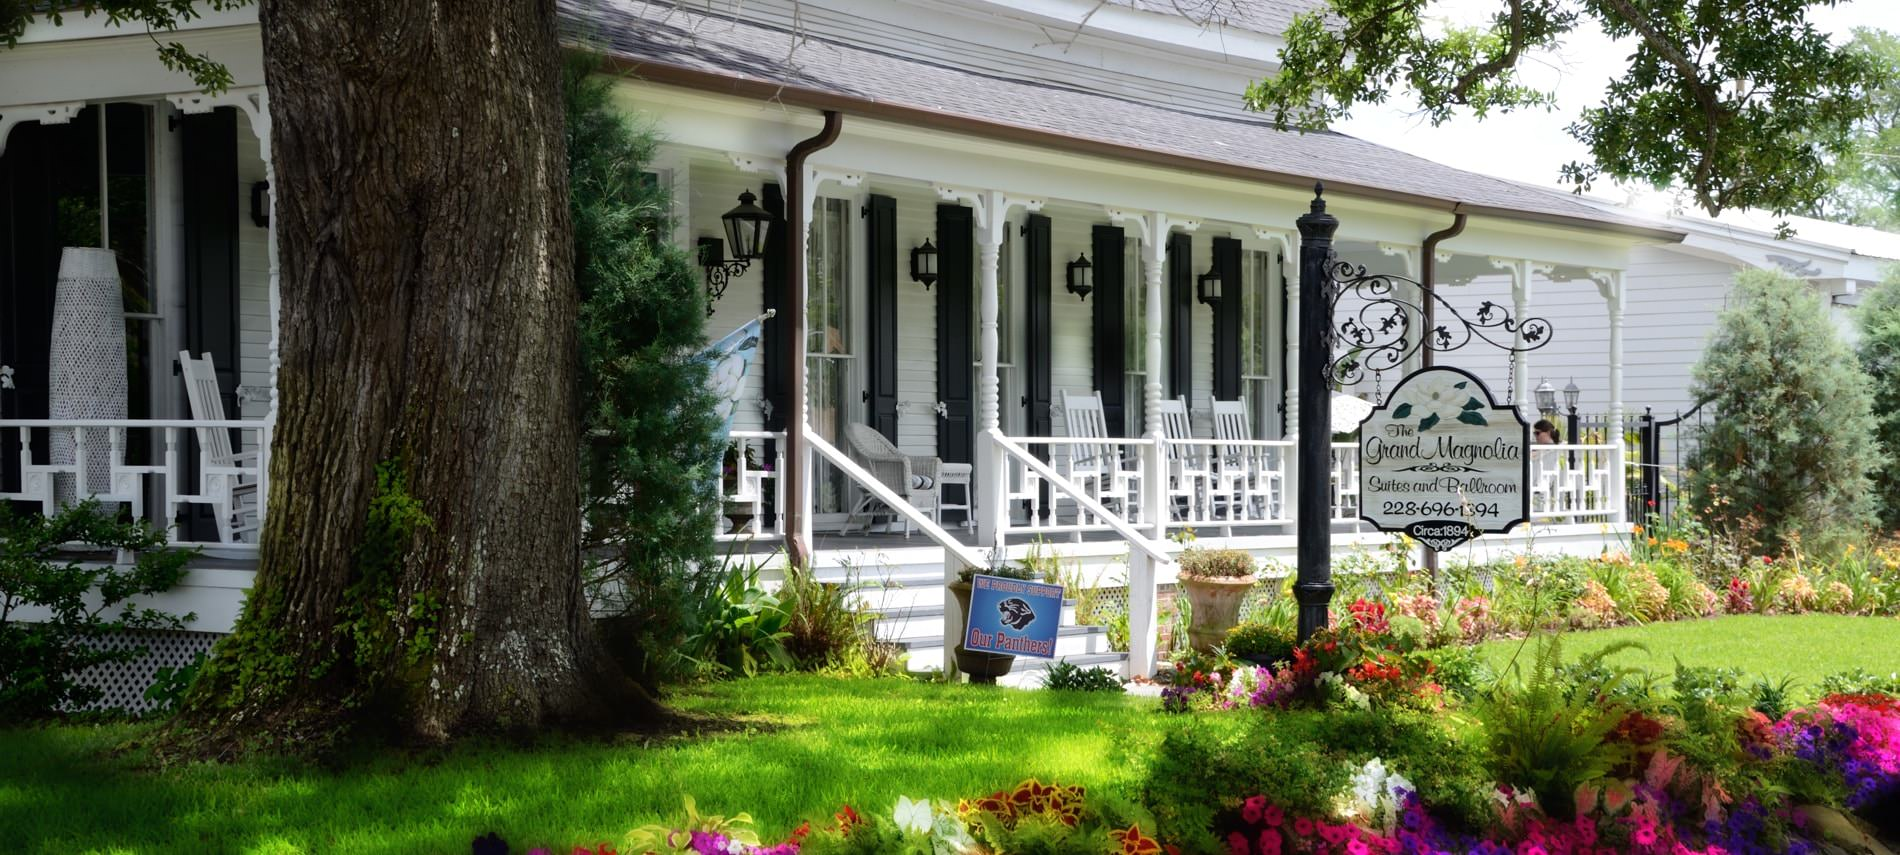 Exterior view, white sided home with covered porch, windows with black shutters amidst green grass, colorful flowers and mature tree